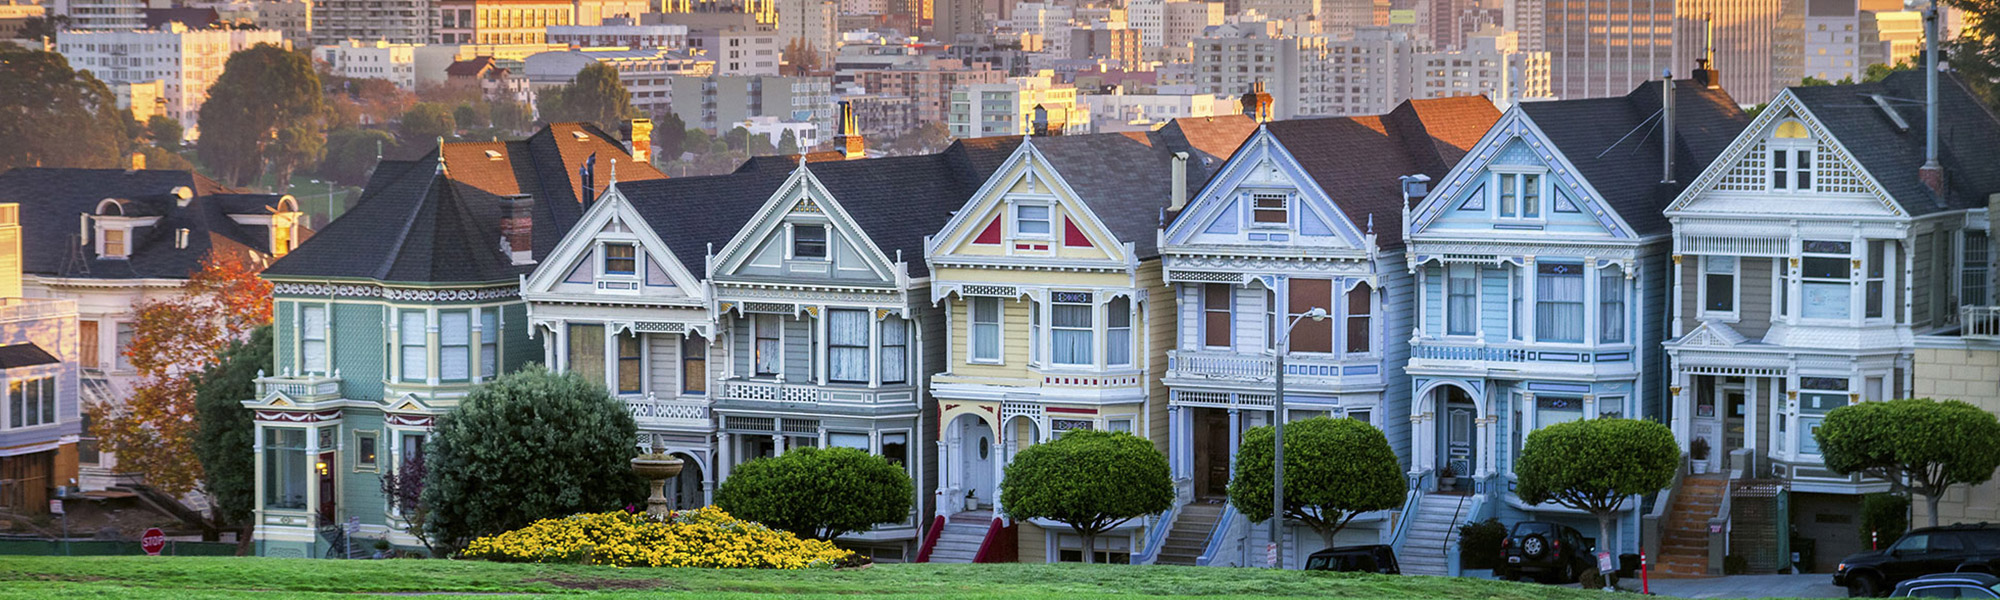 San Francisco Hotel Deals